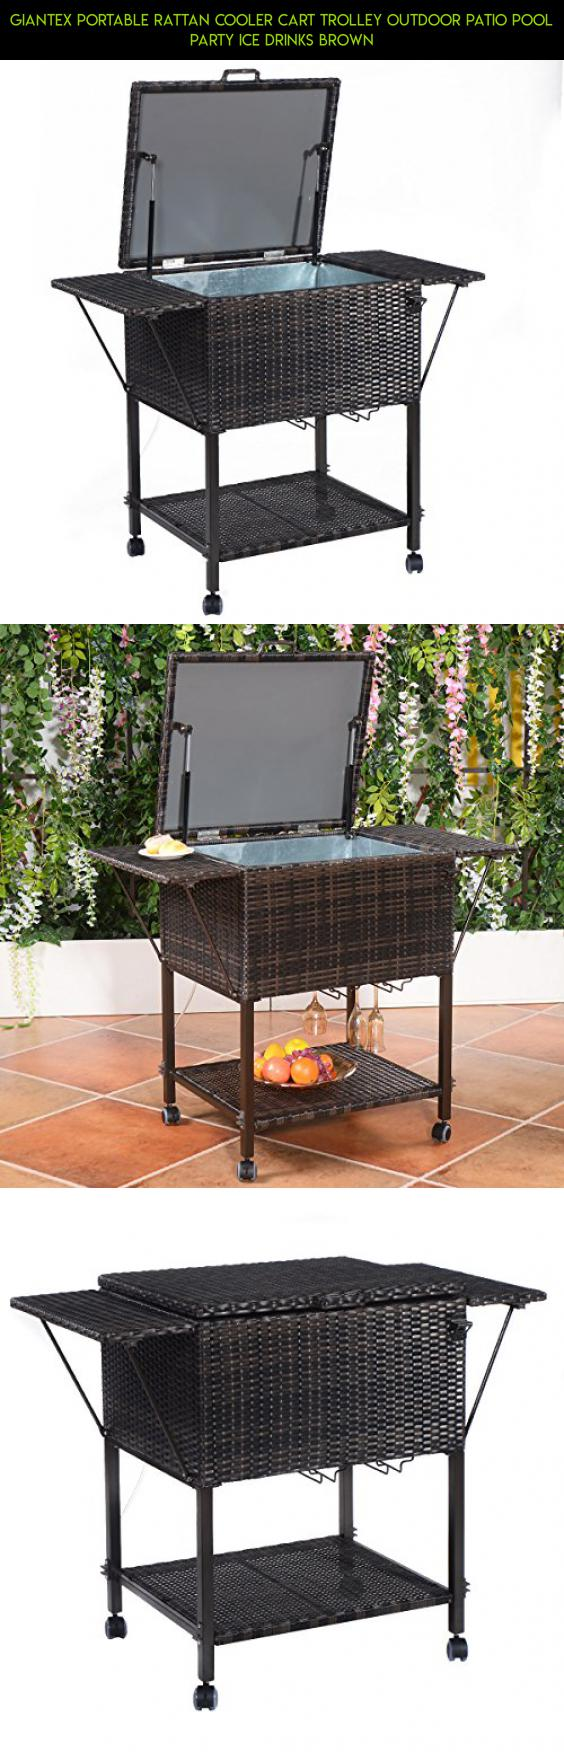 Giantex Portable Rattan Cooler Cart Trolley Outdoor Patio Pool Party Ice  Drinks Brown #bins #